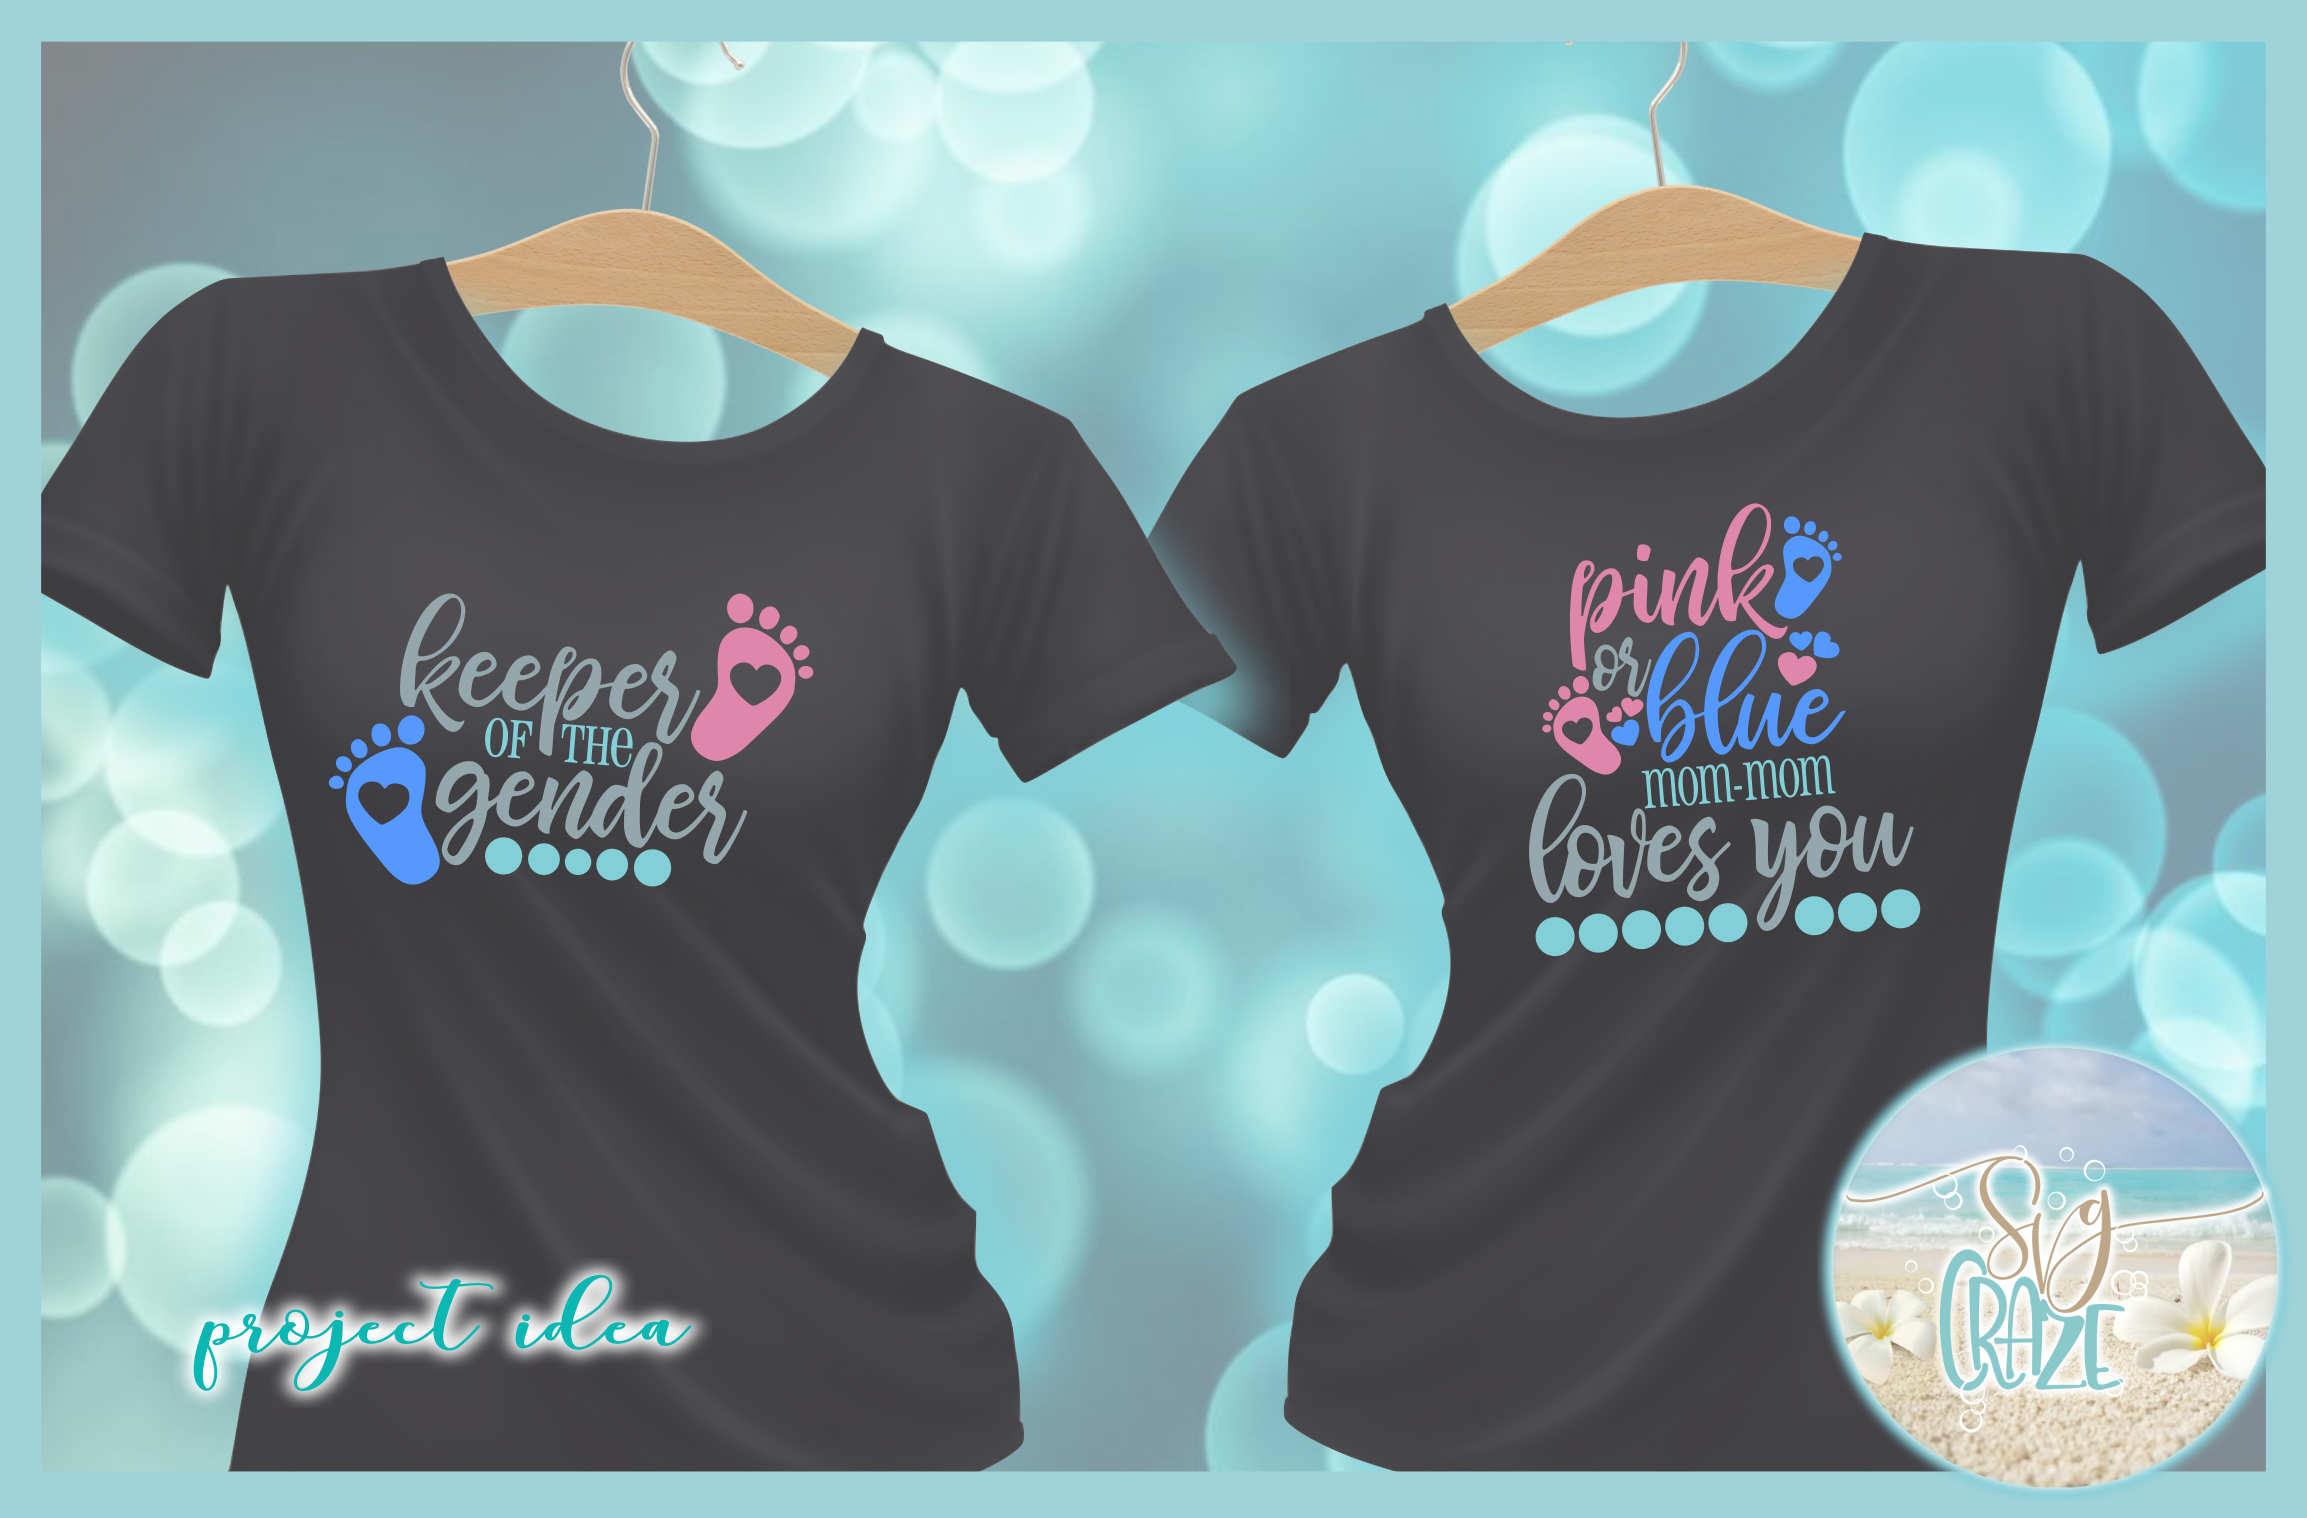 Keeper Of The Gender Pink Or Blue Loves You Tshirt Quote SVG example image 2